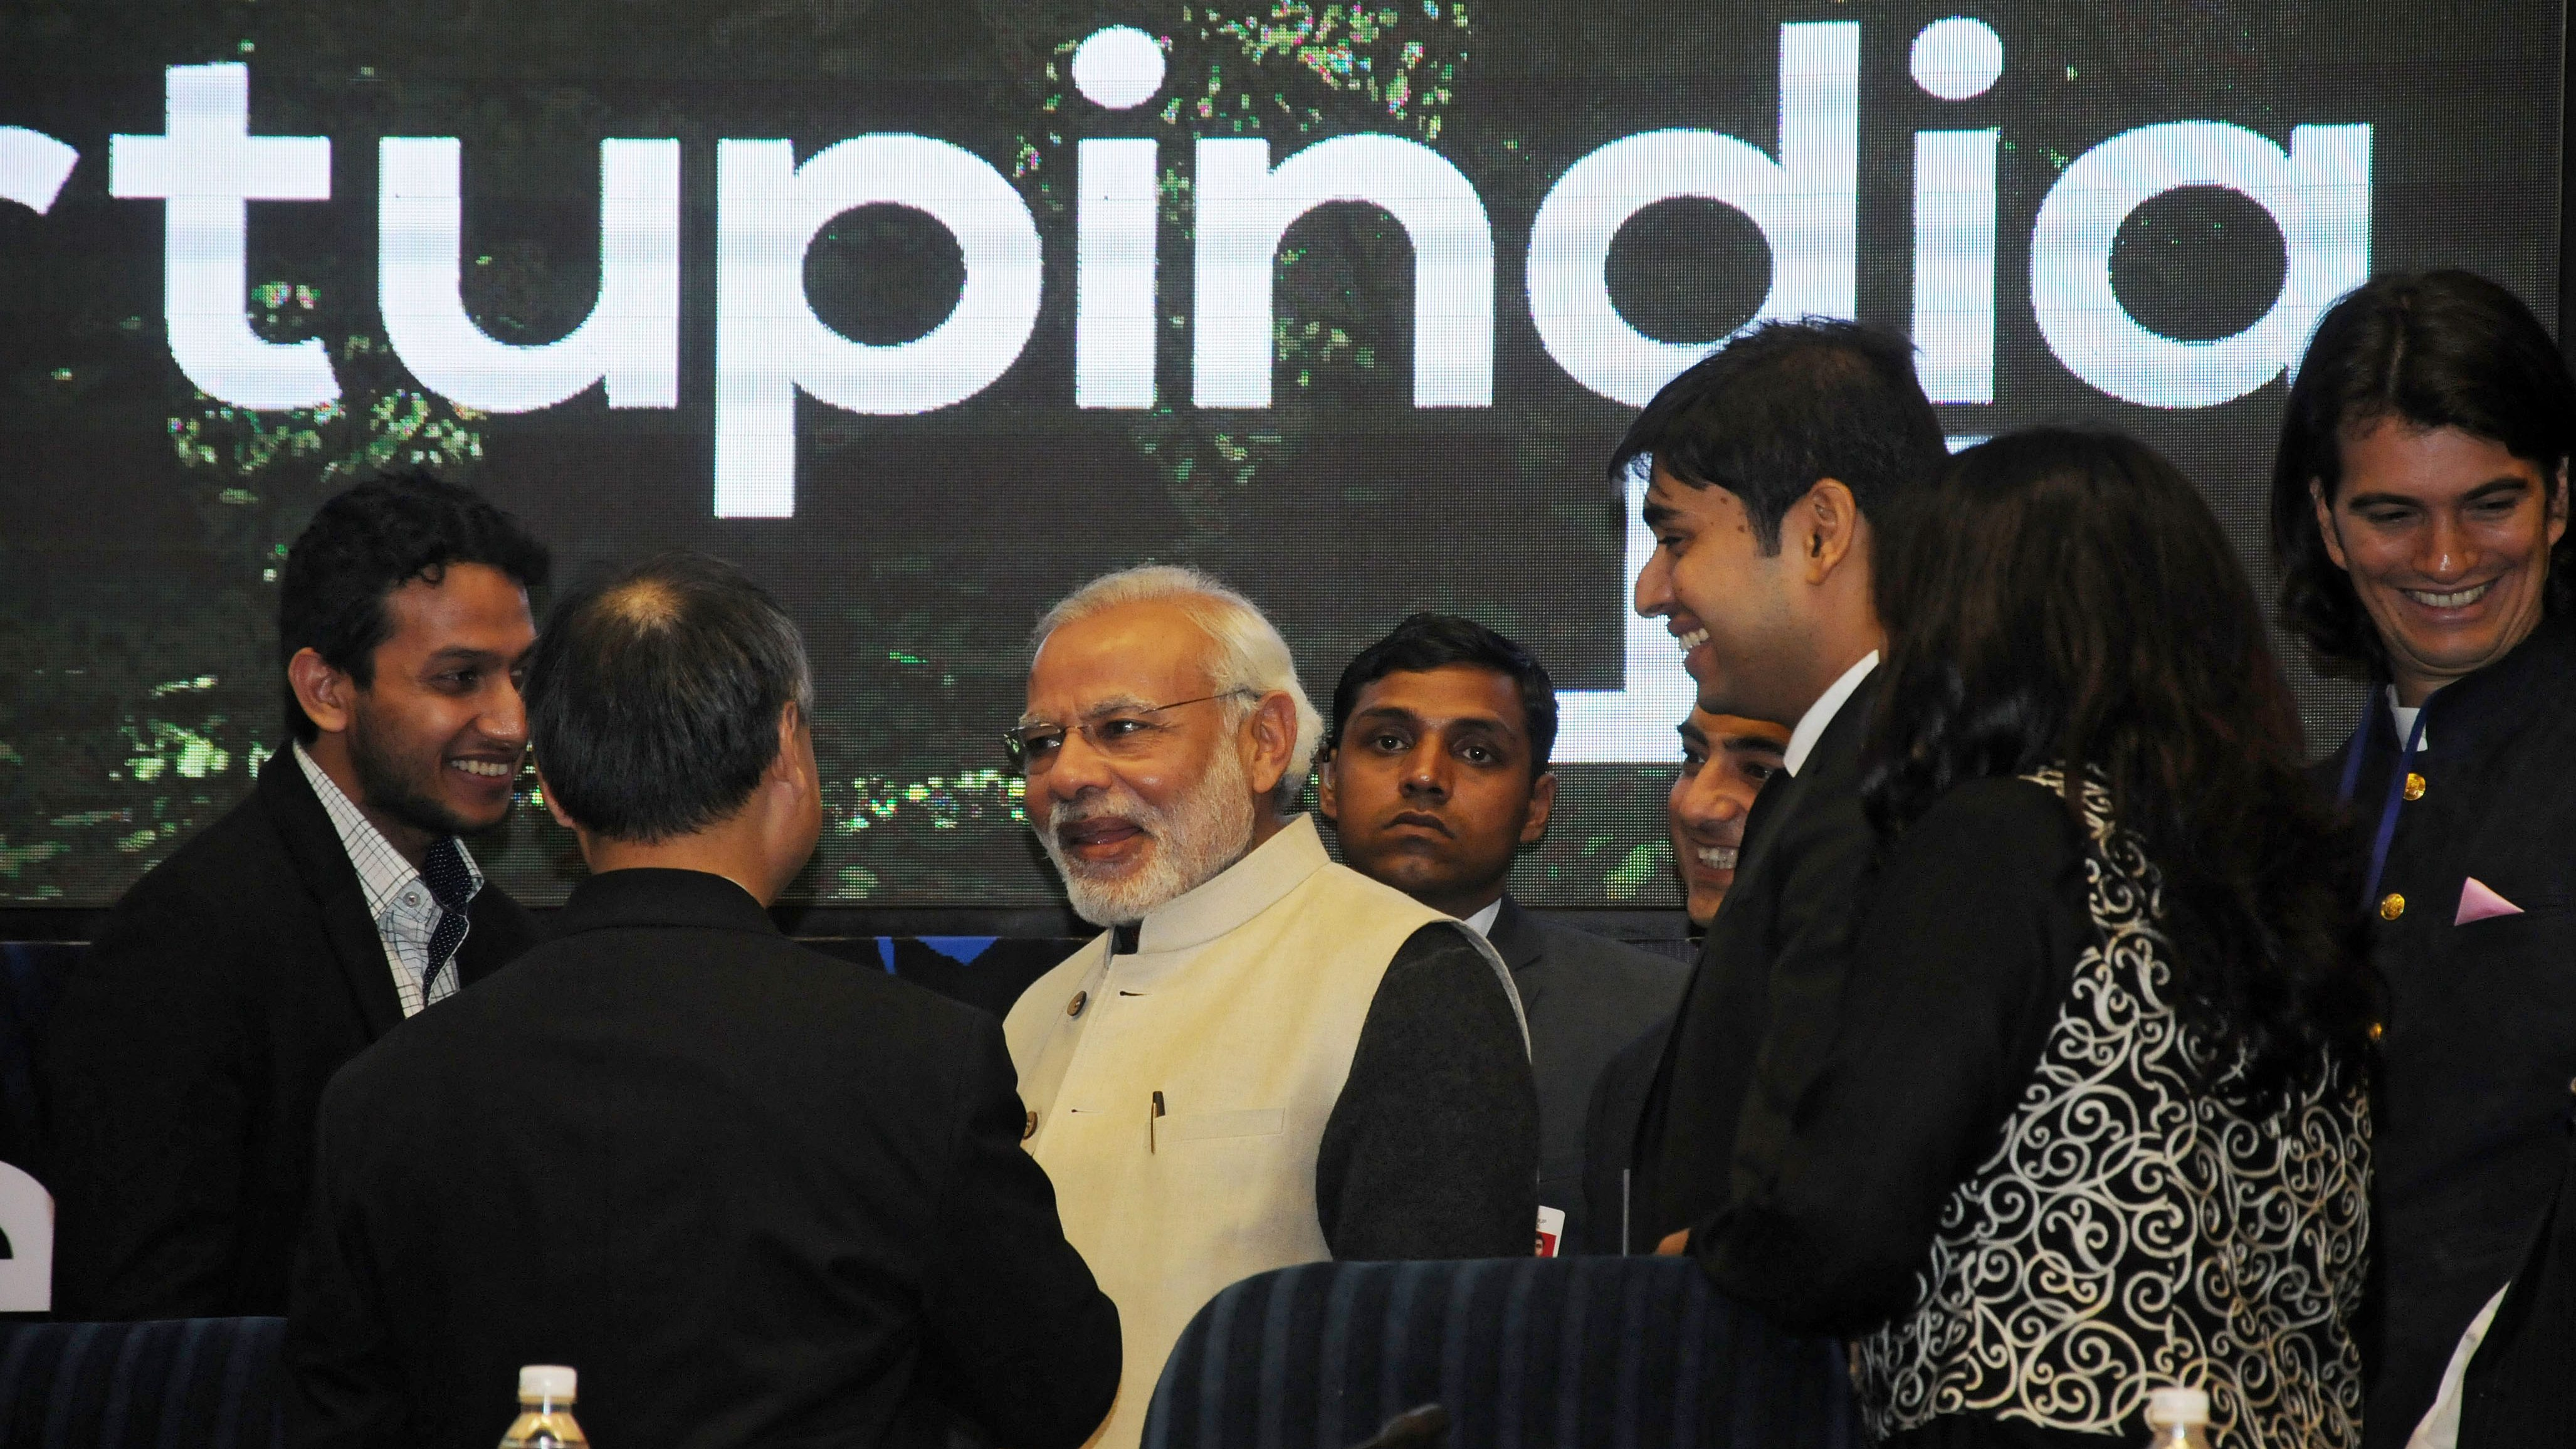 epa05105314 Indian Prime Minister, Narendra Modi (C), during 'Start Up India' event to launch the initiative and unveil the startup Action Plan by him in New Delhi, India, 16 January 2016. Centred around the entrepreneurial spirit of India, the Start-Up India plan is expected to boost the entrepreneurship in the country. The Indian government said it will introduce friendly tax measures and easy financing for start-ups to boost entrepreneurship at the grass-root level. With 4,200 firms, India already ranks third in the world in terms of the number of start-ups, behind the United States and Britain.  EPA/STR